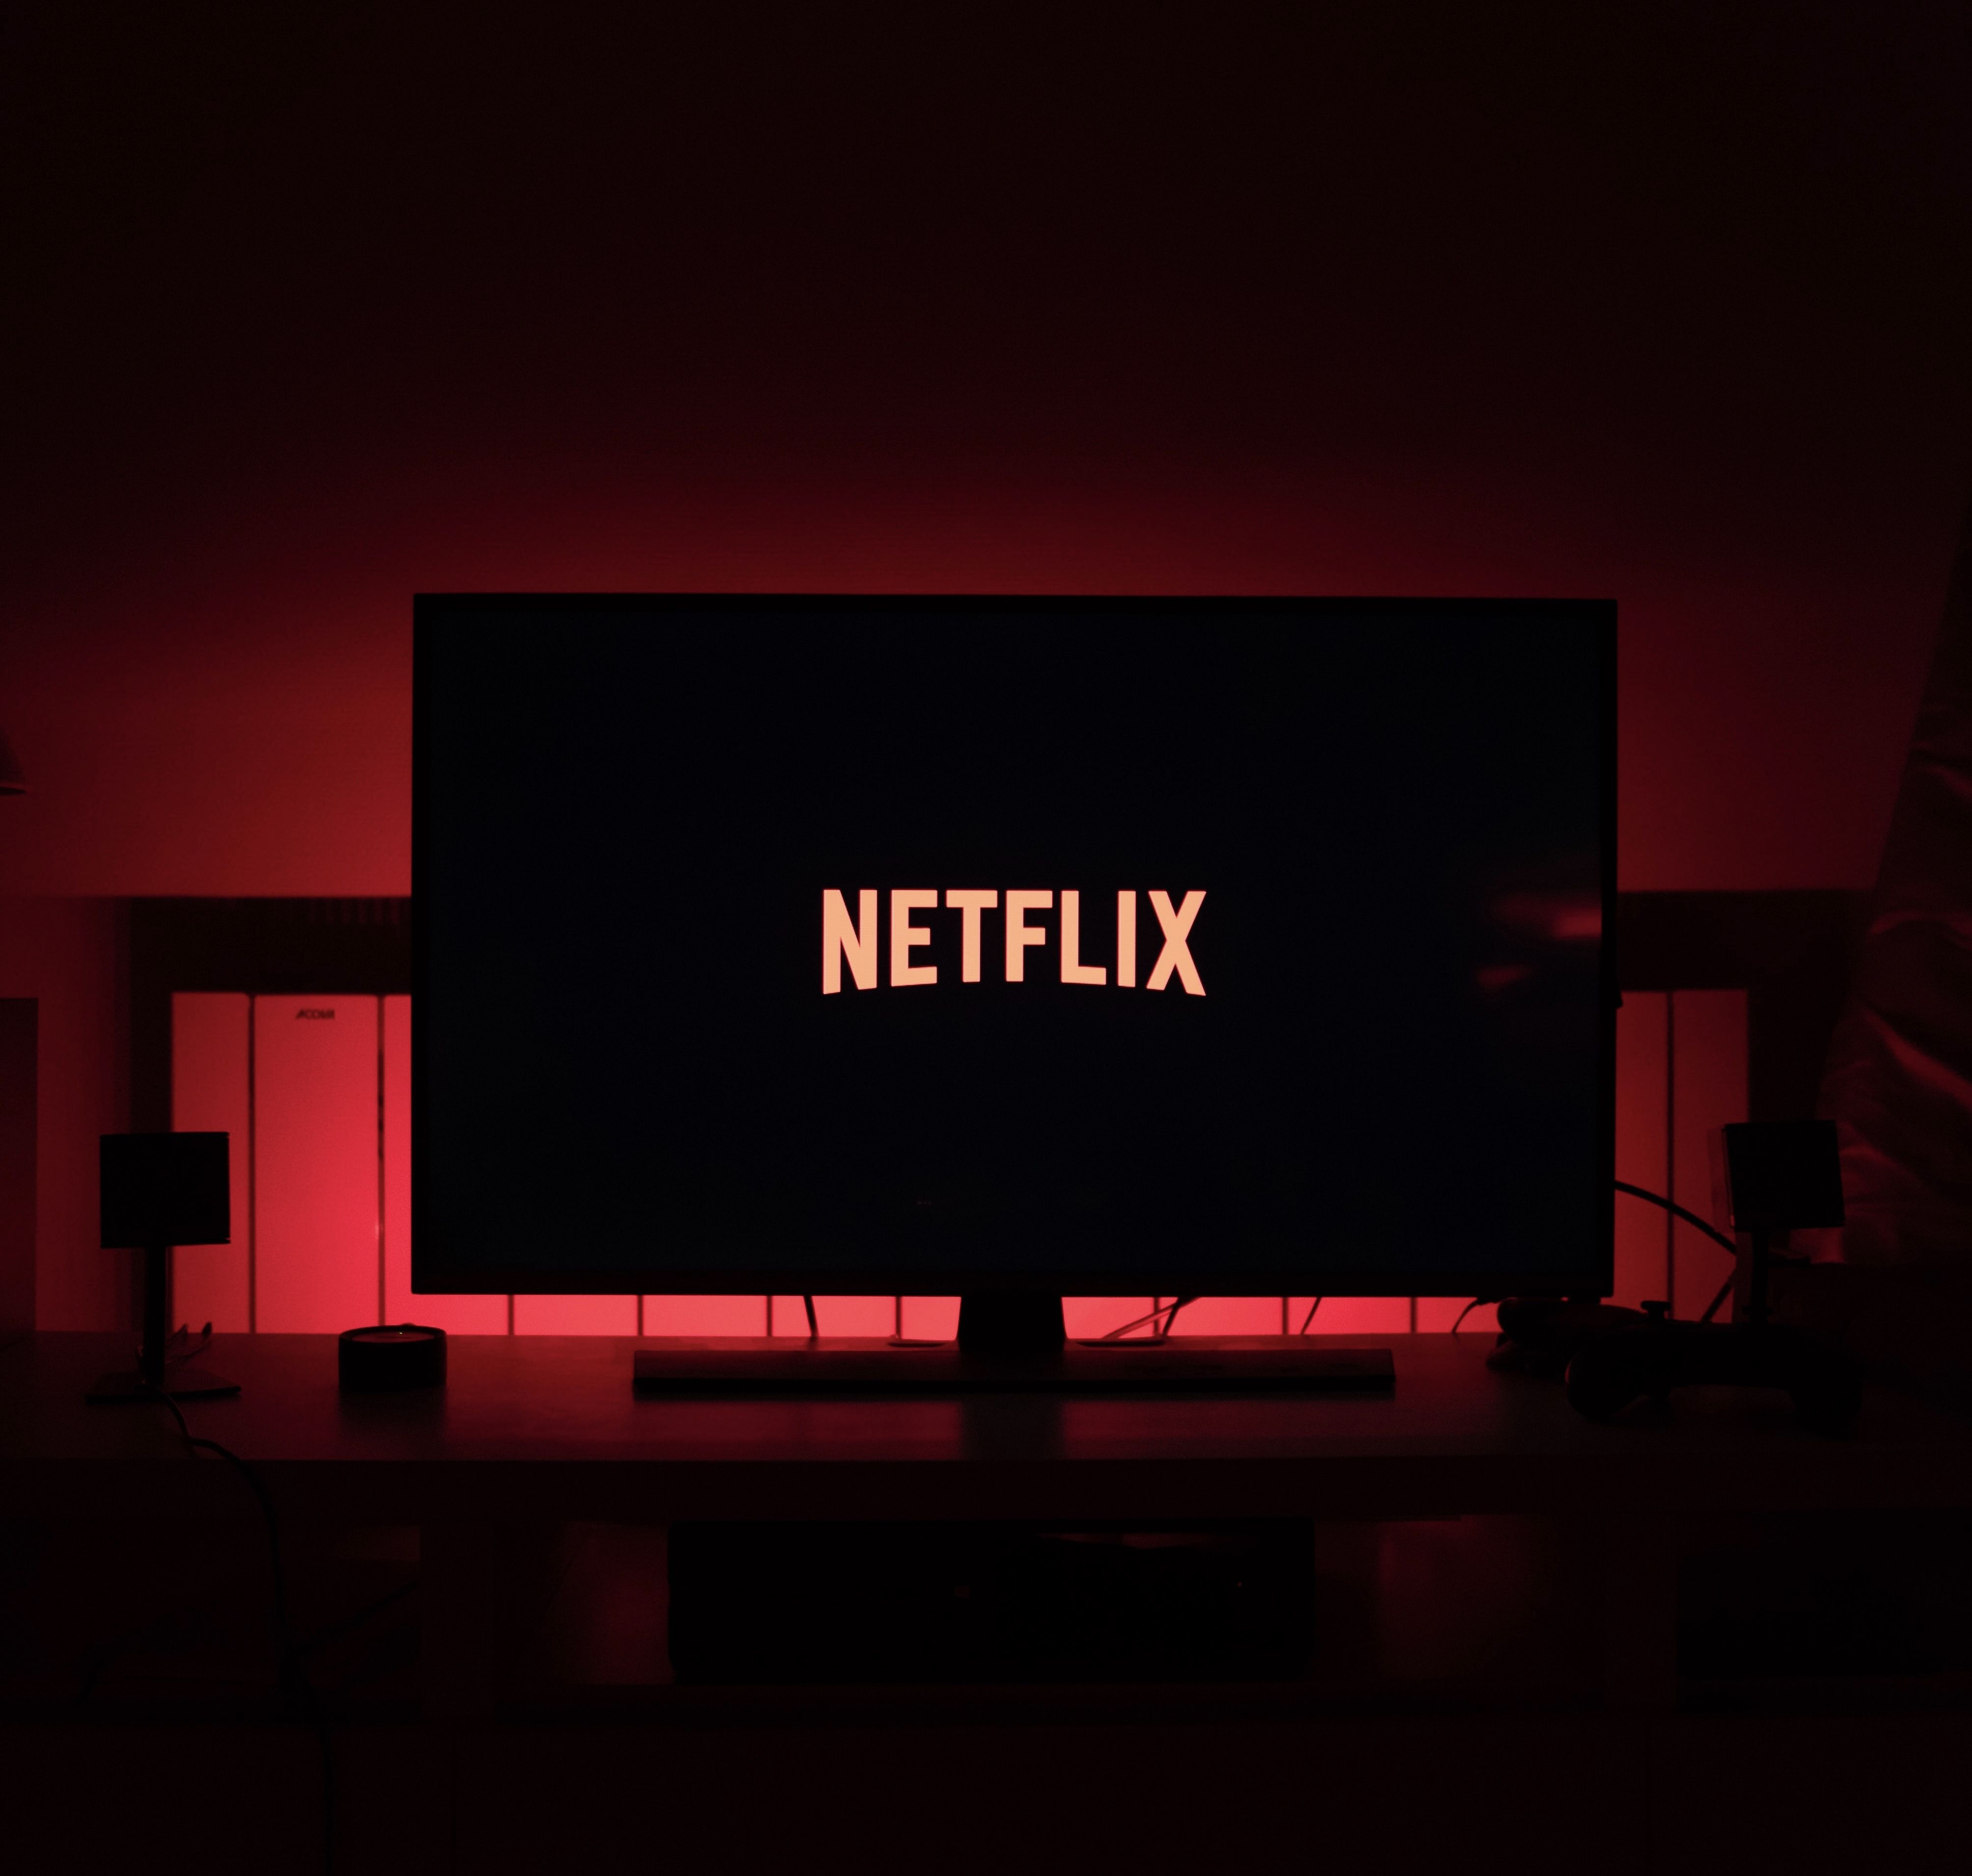 netflix logo on television streaming with dark background